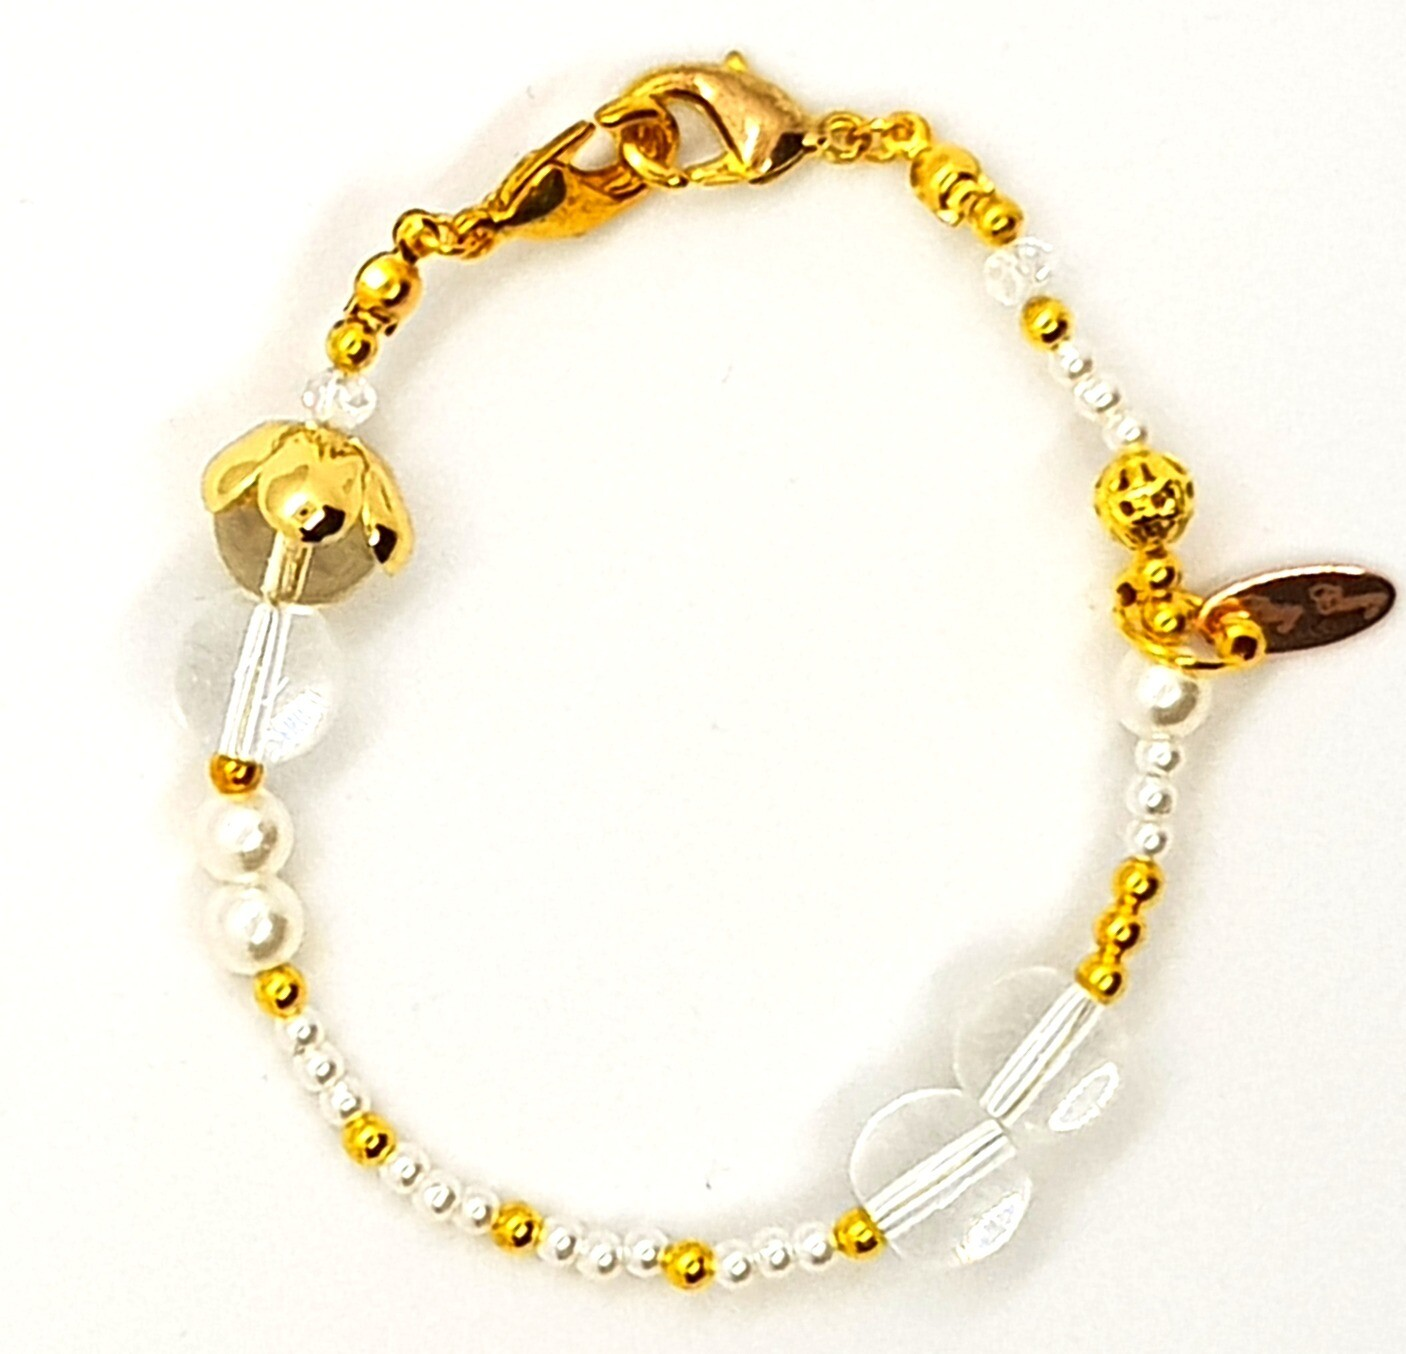 Bracelet & Face Mask Extender Dual Function (Iulila - Crystal Pearl Beads, Gold Accessories & Durable Soft Wire String)